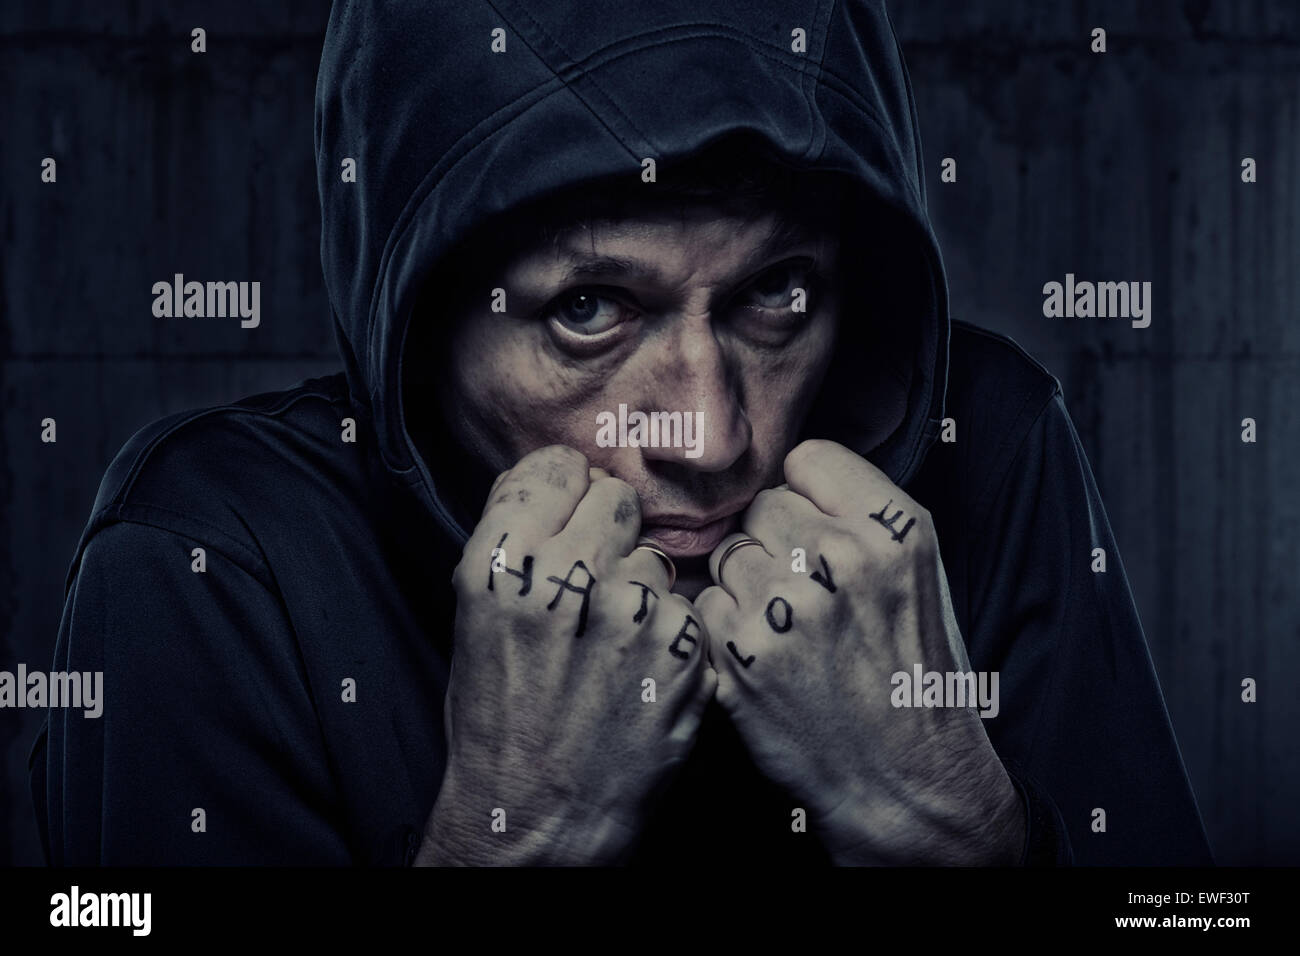 Grizzled man in hooded jacket with fists marked 'Hate' and 'Love' - Stock Image